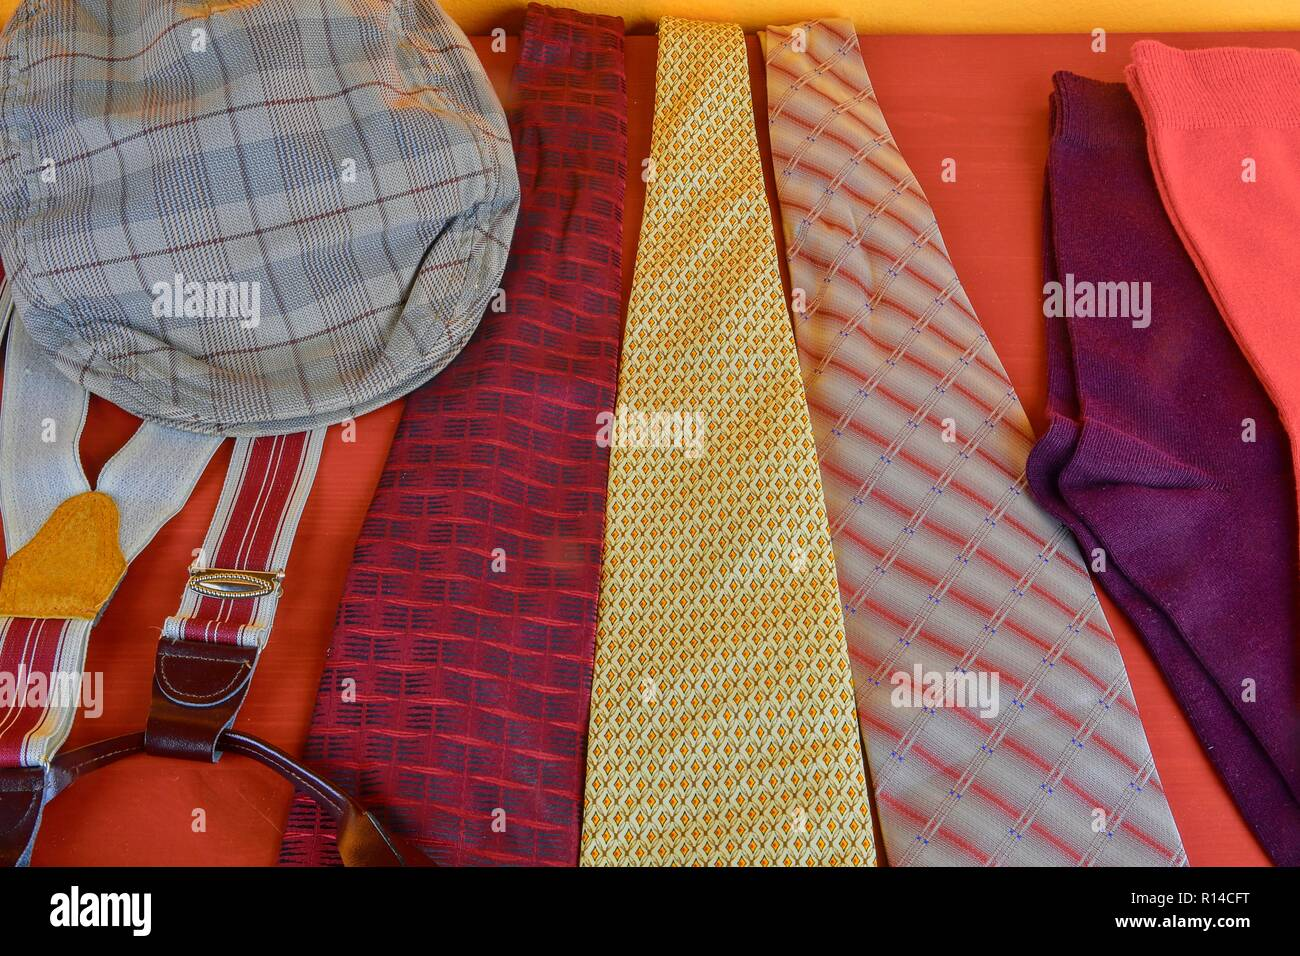 Socks Walking Stock Photos Images Page 3 Alamy Clarette Sandals Cristina Beige Man Garments Clothing Concept For Men Colorful Ties Braces And Checked